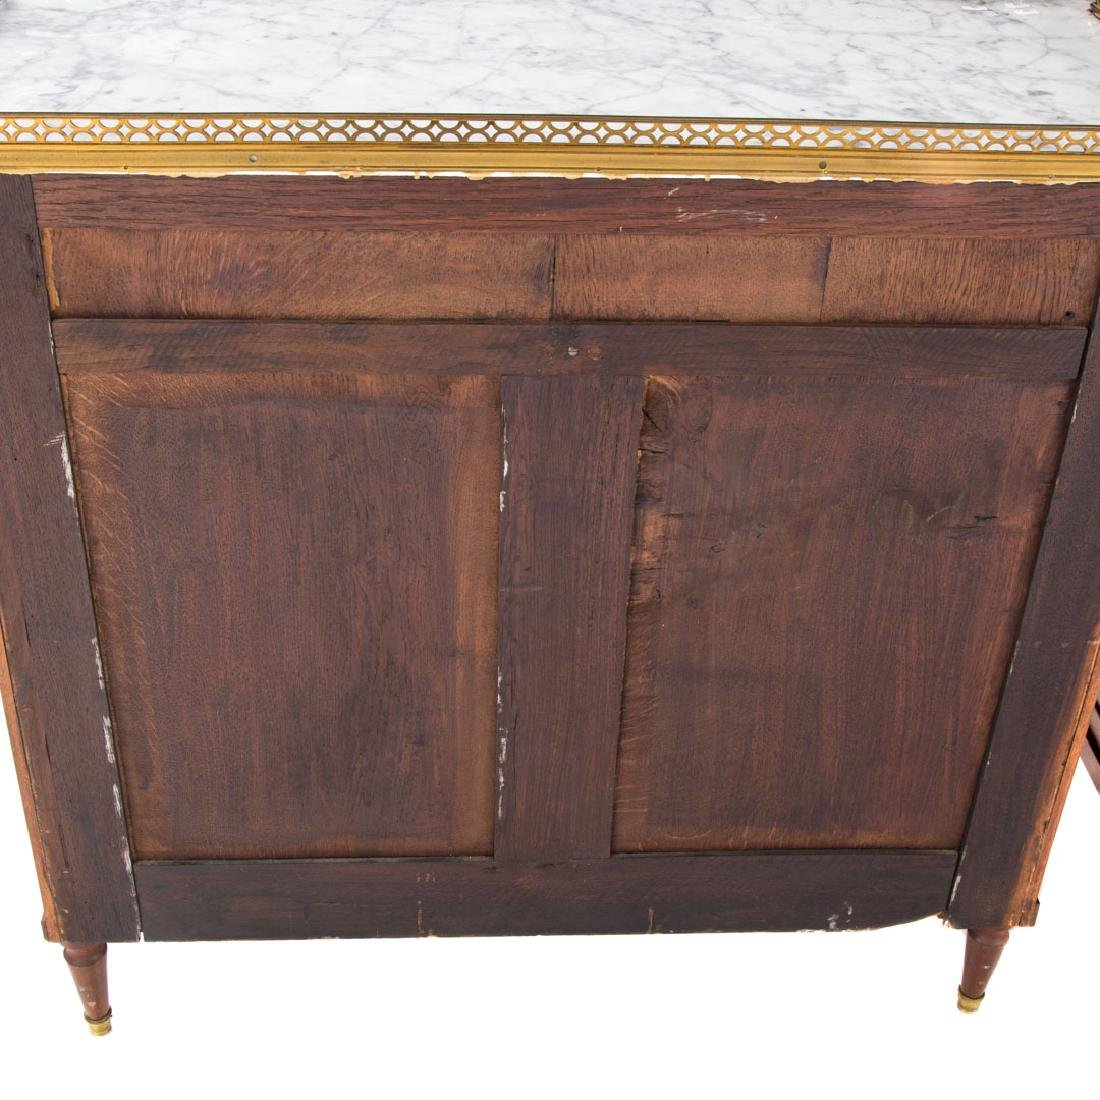 Pr Louis XVI style mahogany & marble top cabinets - 4